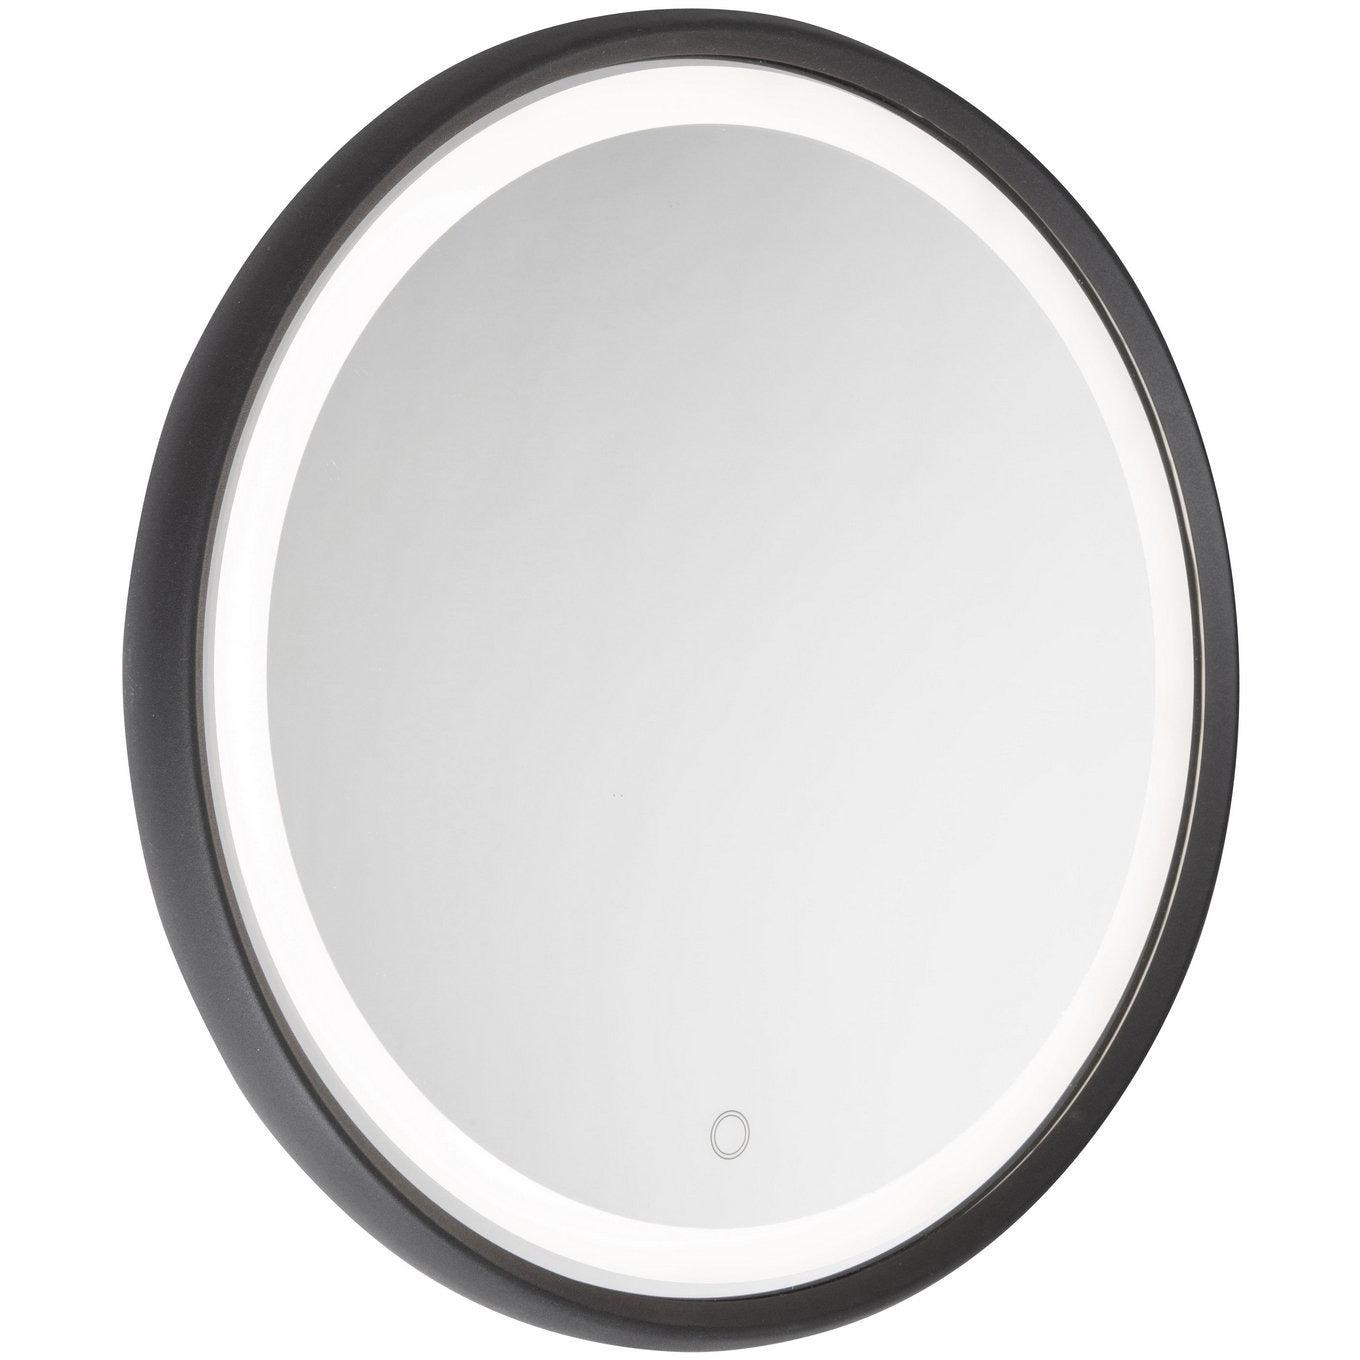 Artcraft Lighting - AM316 - LED Mirror - Reflections - Matte Black